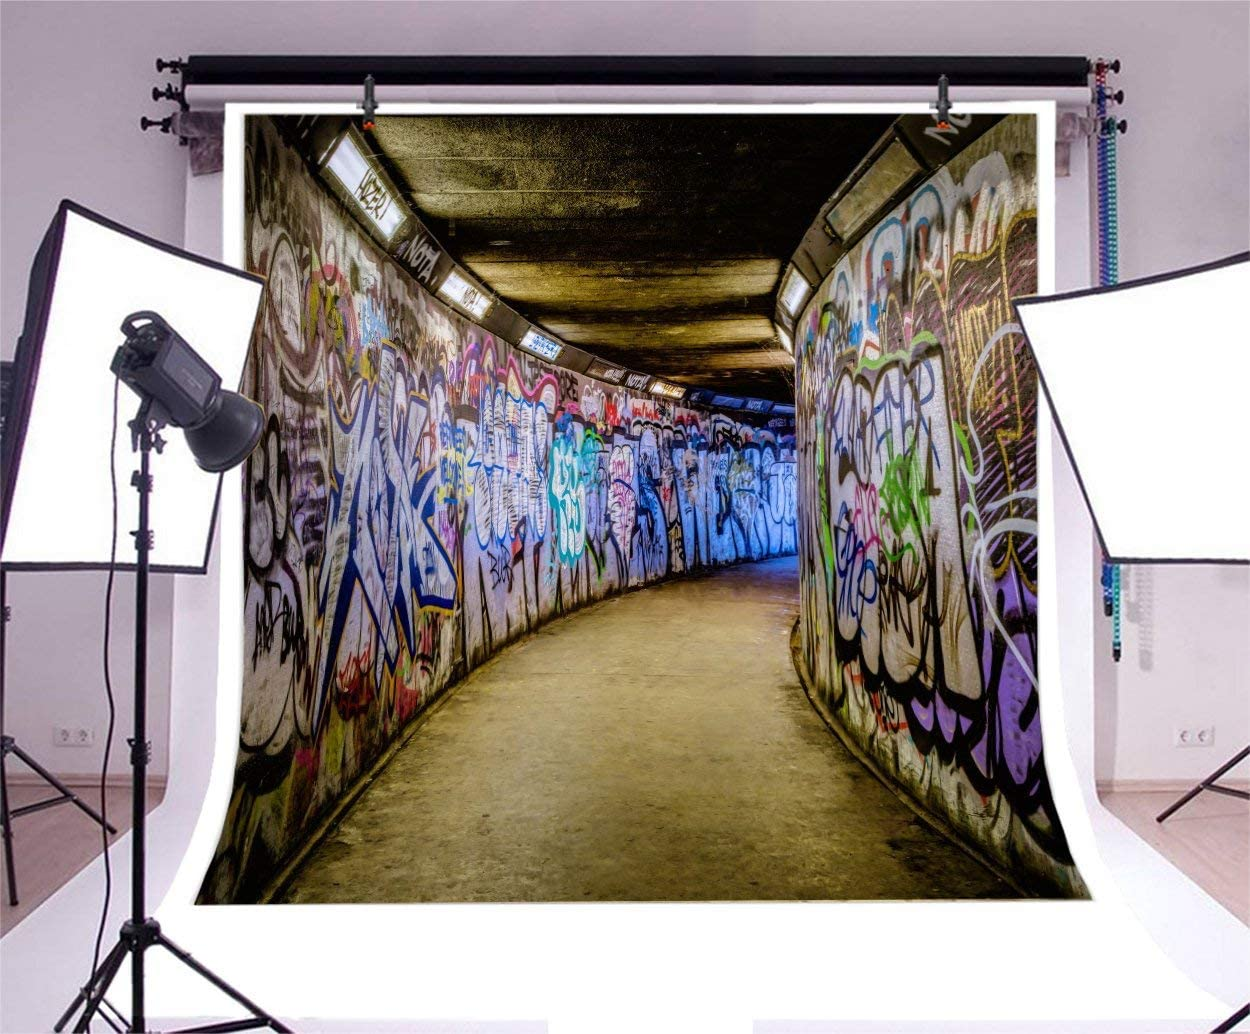 12x12ft Subway Graffiti Photo Backdrop Old Drak Underground Corridor Wall Hip Hop Abstract Air Painting Tunnels Background for Photography Photo Studio Props